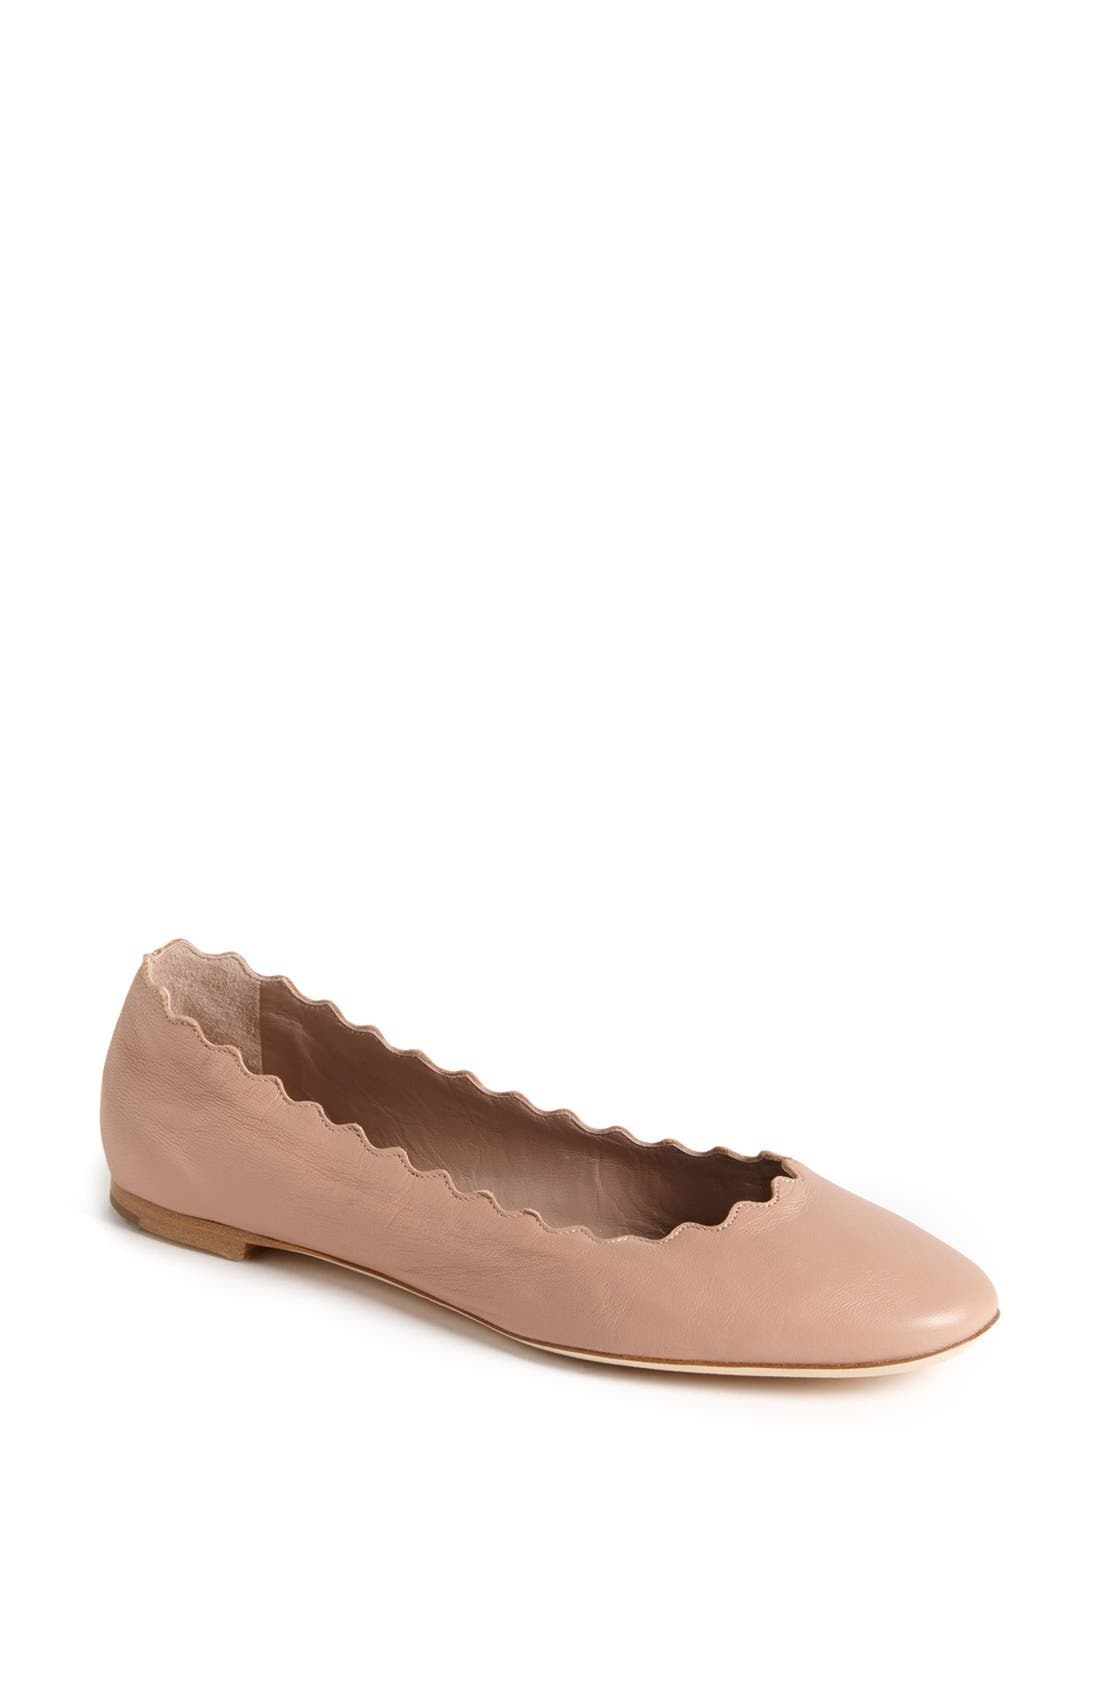 'Lauren' Scalloped Ballet Flat,                             Main thumbnail 1, color,                             Taupe